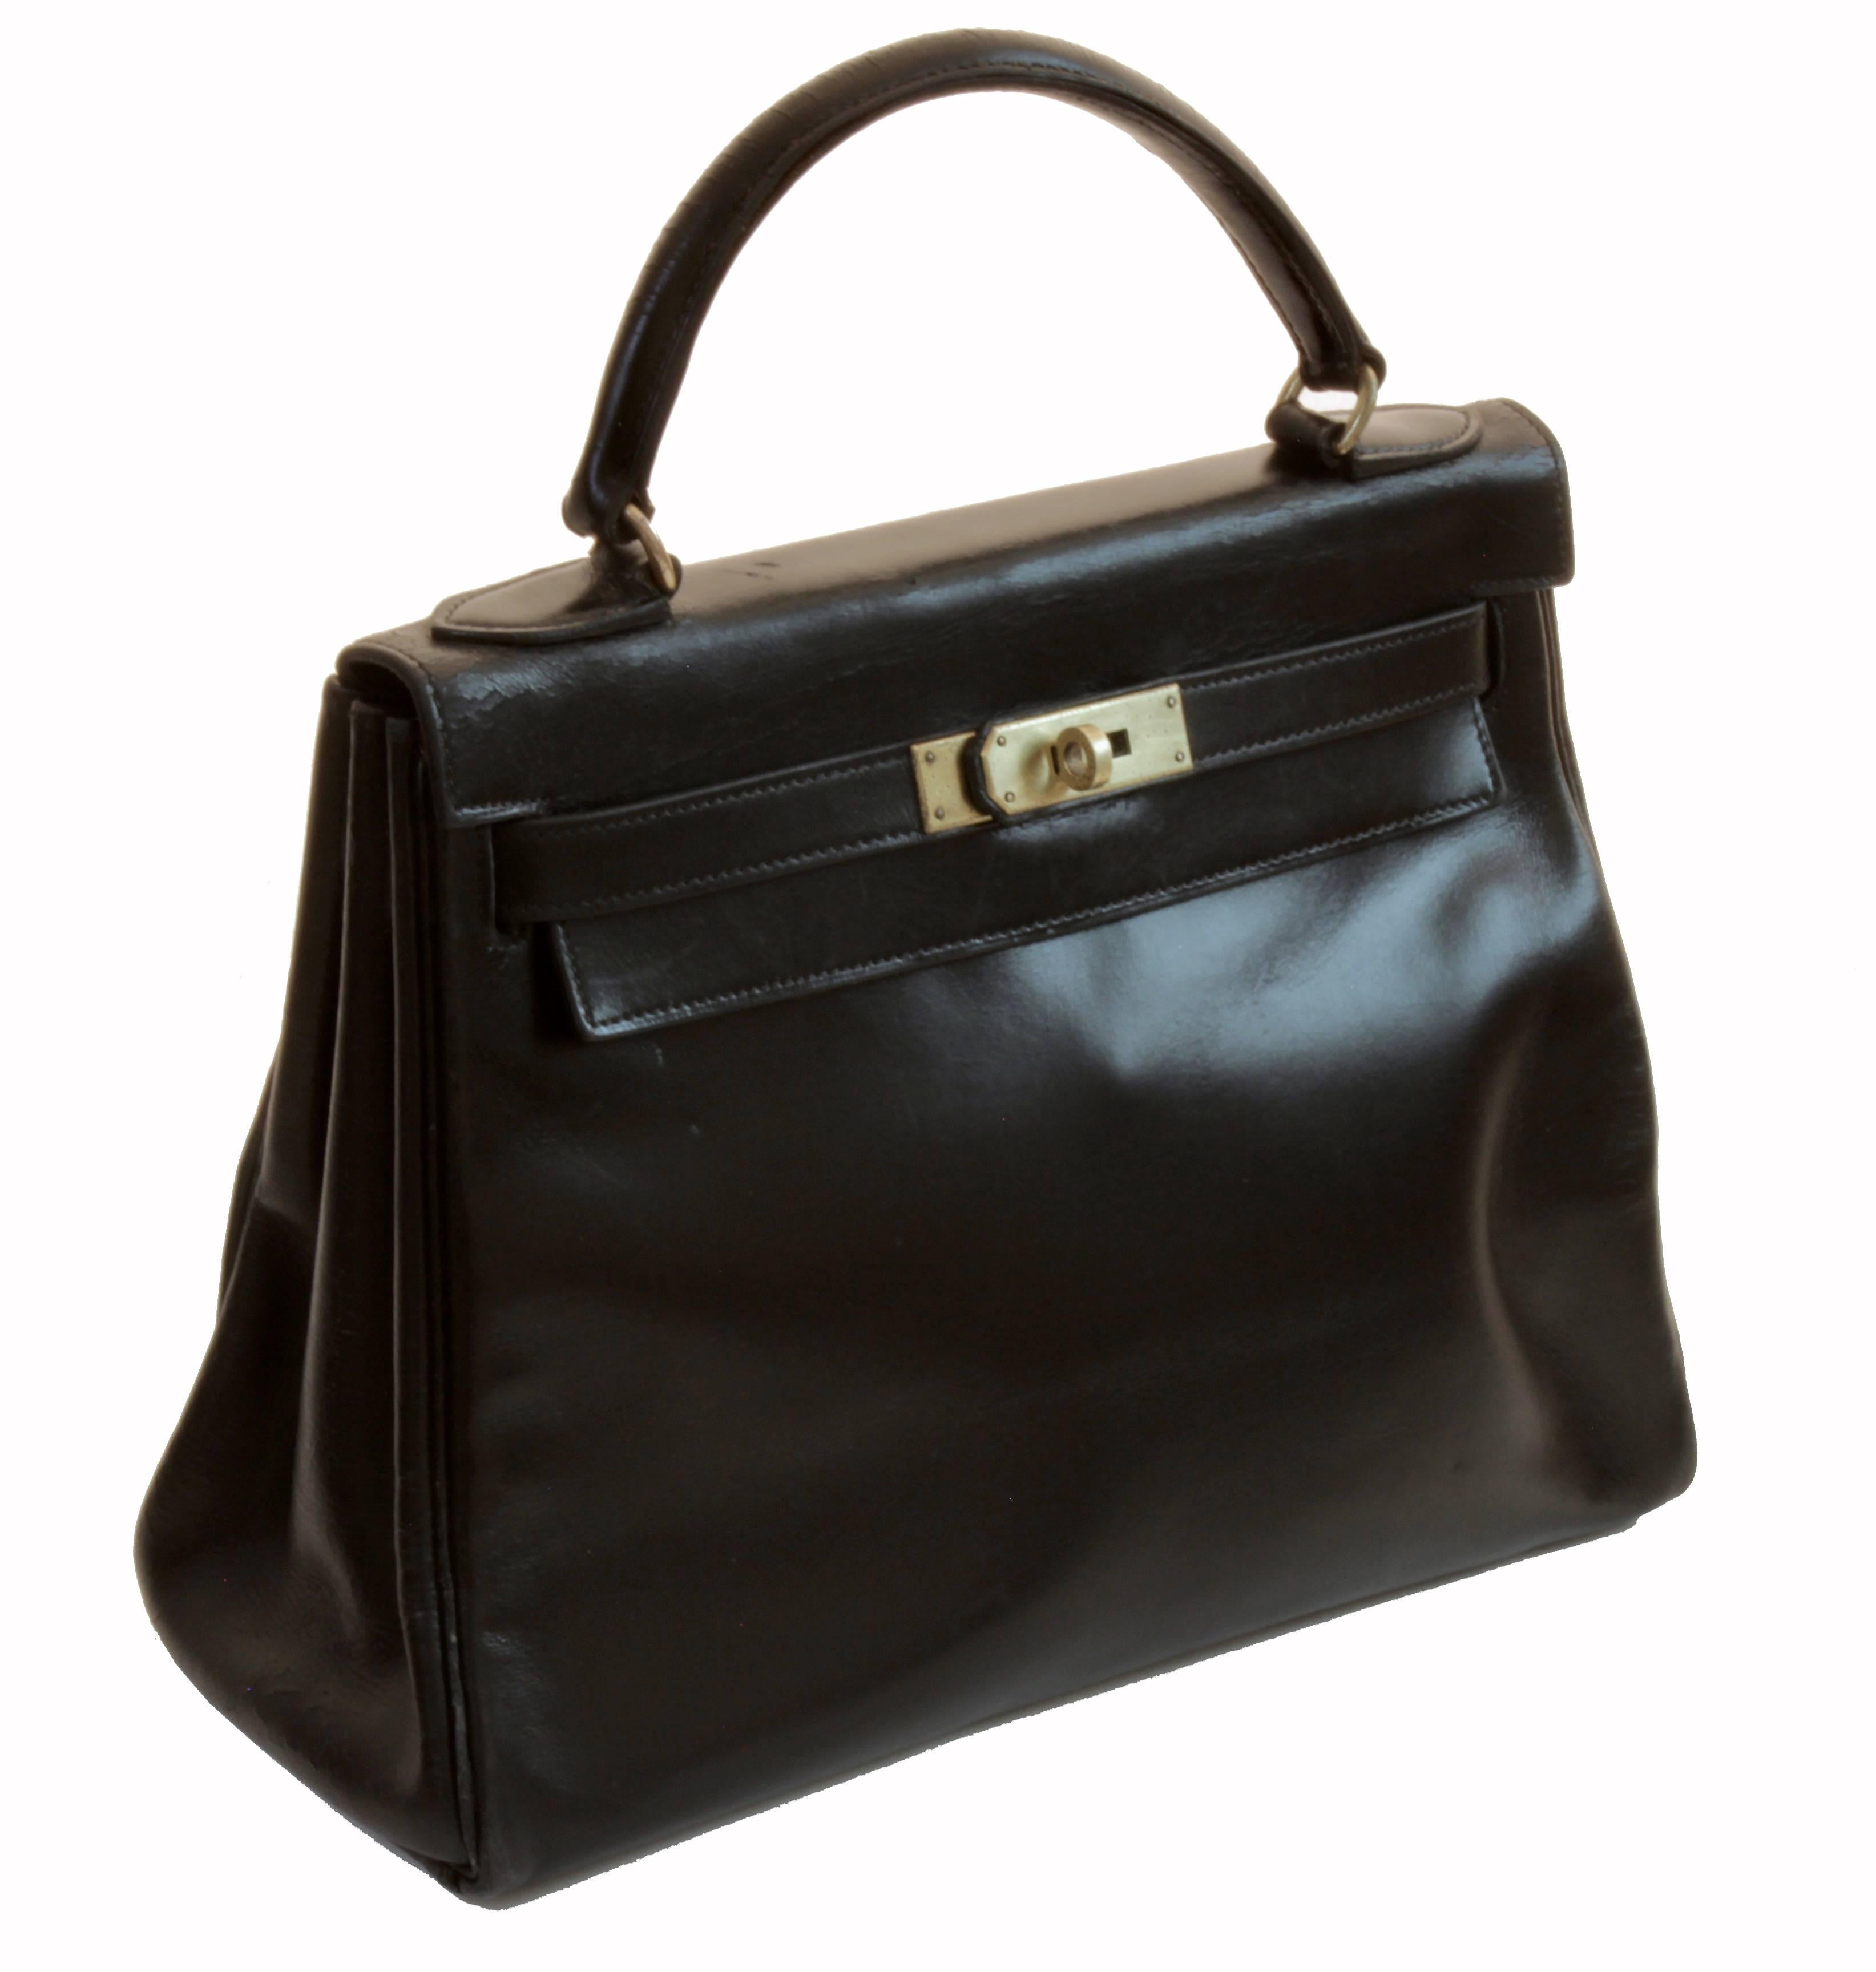 d5b4444a26c9 ... wholesale this iconic top handle bag was made by hermes in 1948 years  before grace kelly